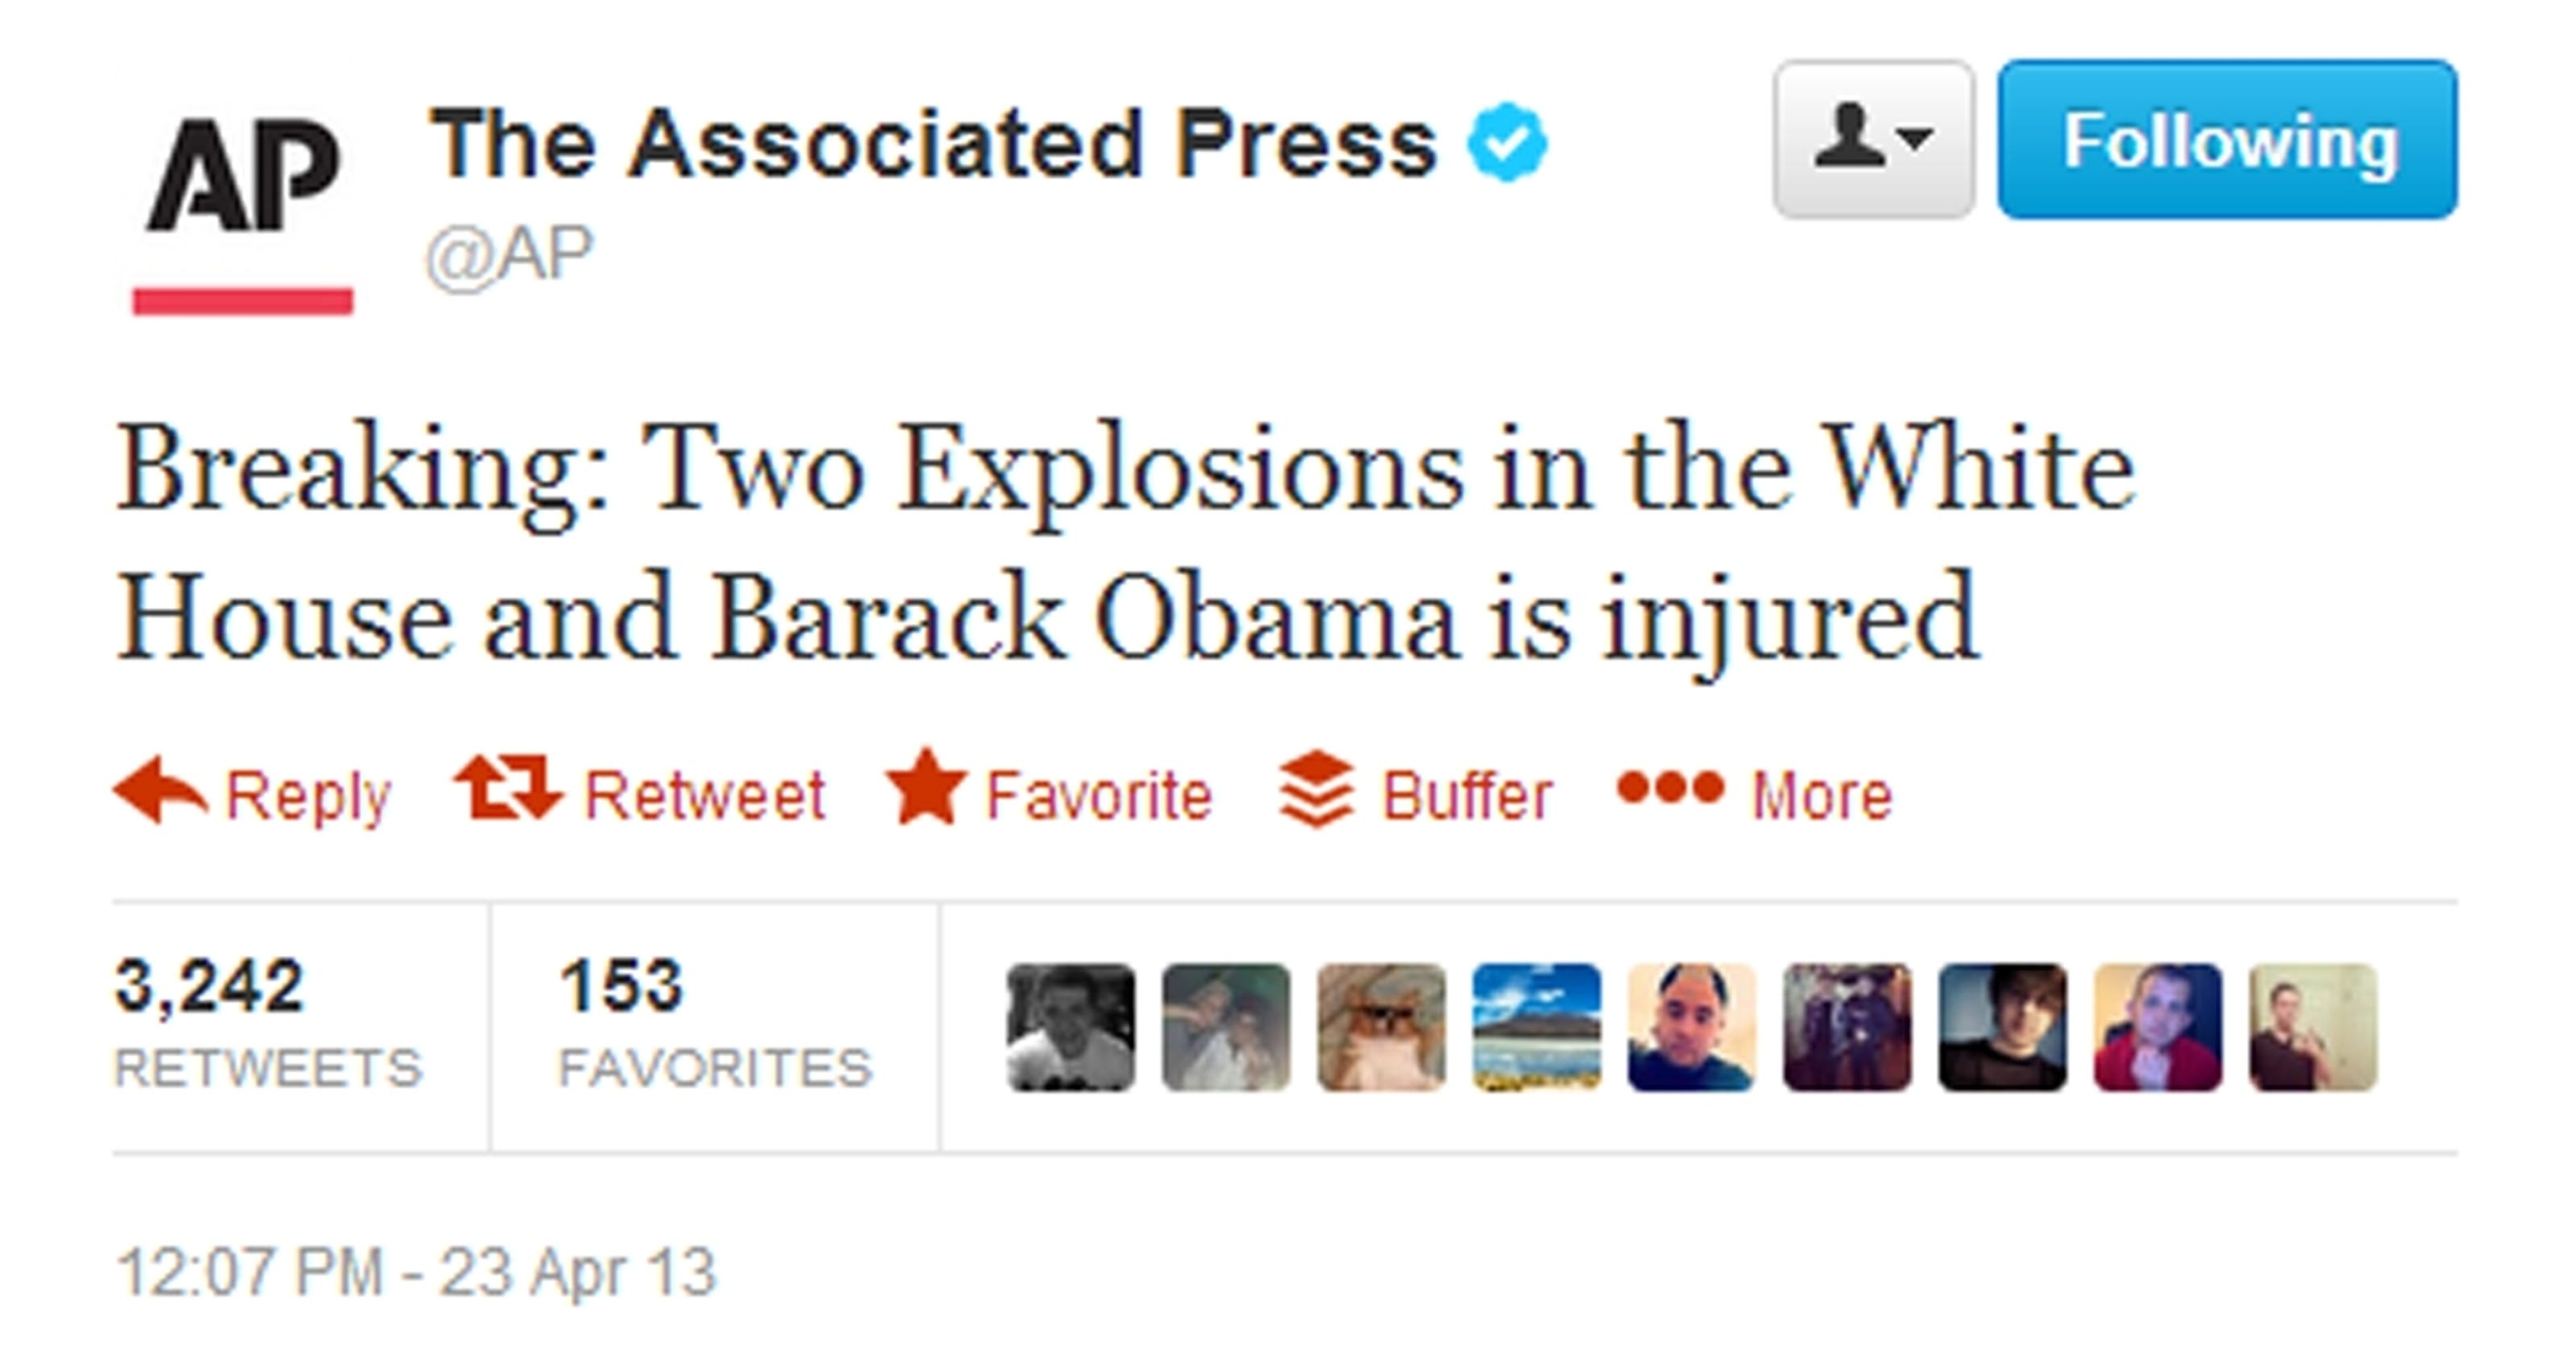 ap twitter feed hacked  no attack at white house